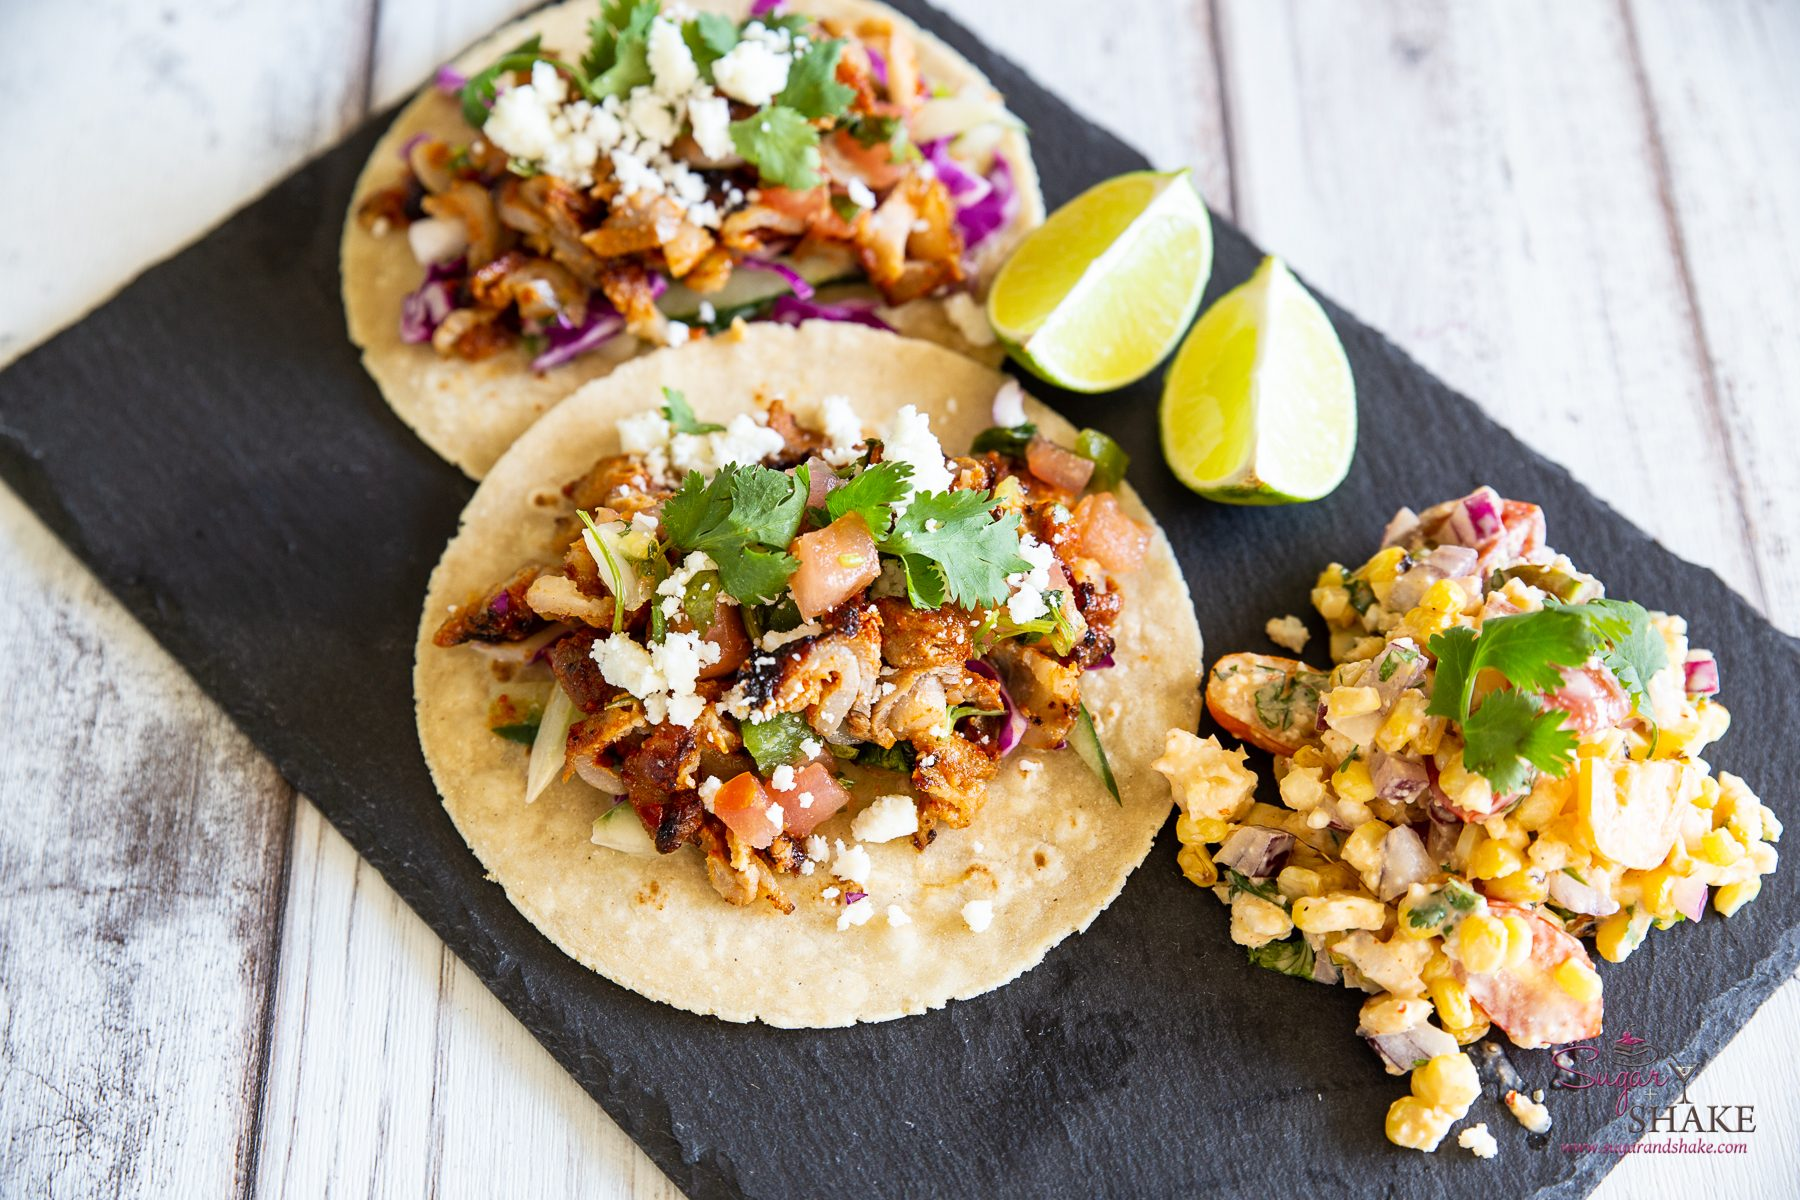 Fusion Street Tacos with Elote-Inspired Salad. Recipe by Foodland Hawaii Corporate Chef Keoni Chang. © 2020 Sugar + Shake